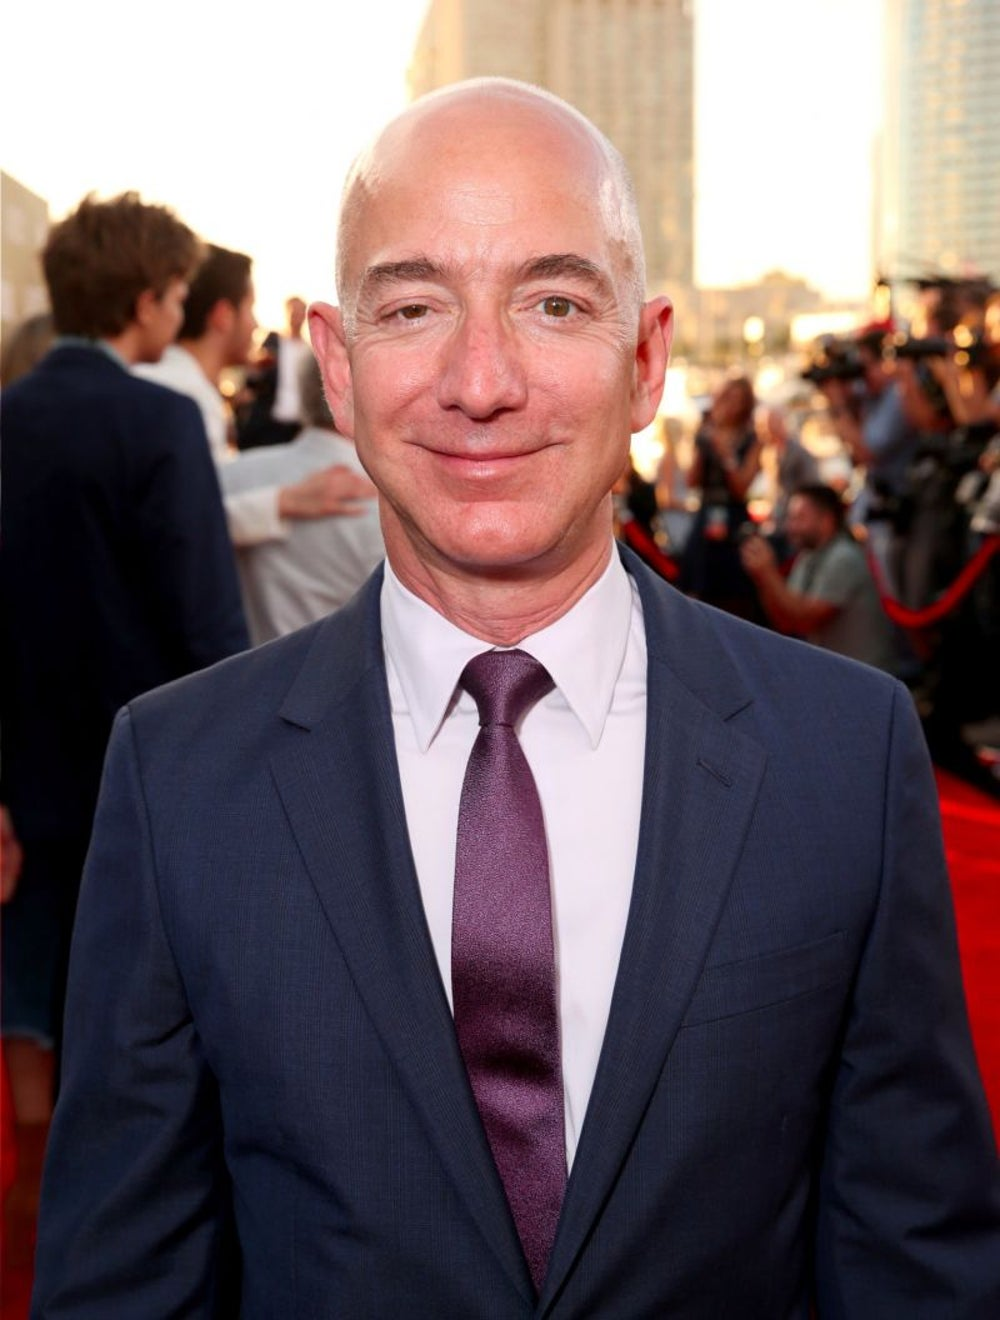 6. Jeff Bezos, founder of Amazon